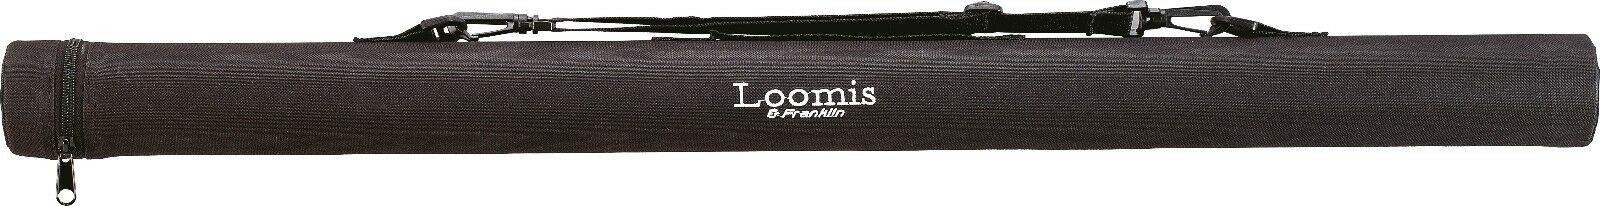 Loomis and Franklin French leader fly rods 9 6 ft 6 9 10 ft 11 ft 12ft 2/3/4 weight 70f6de